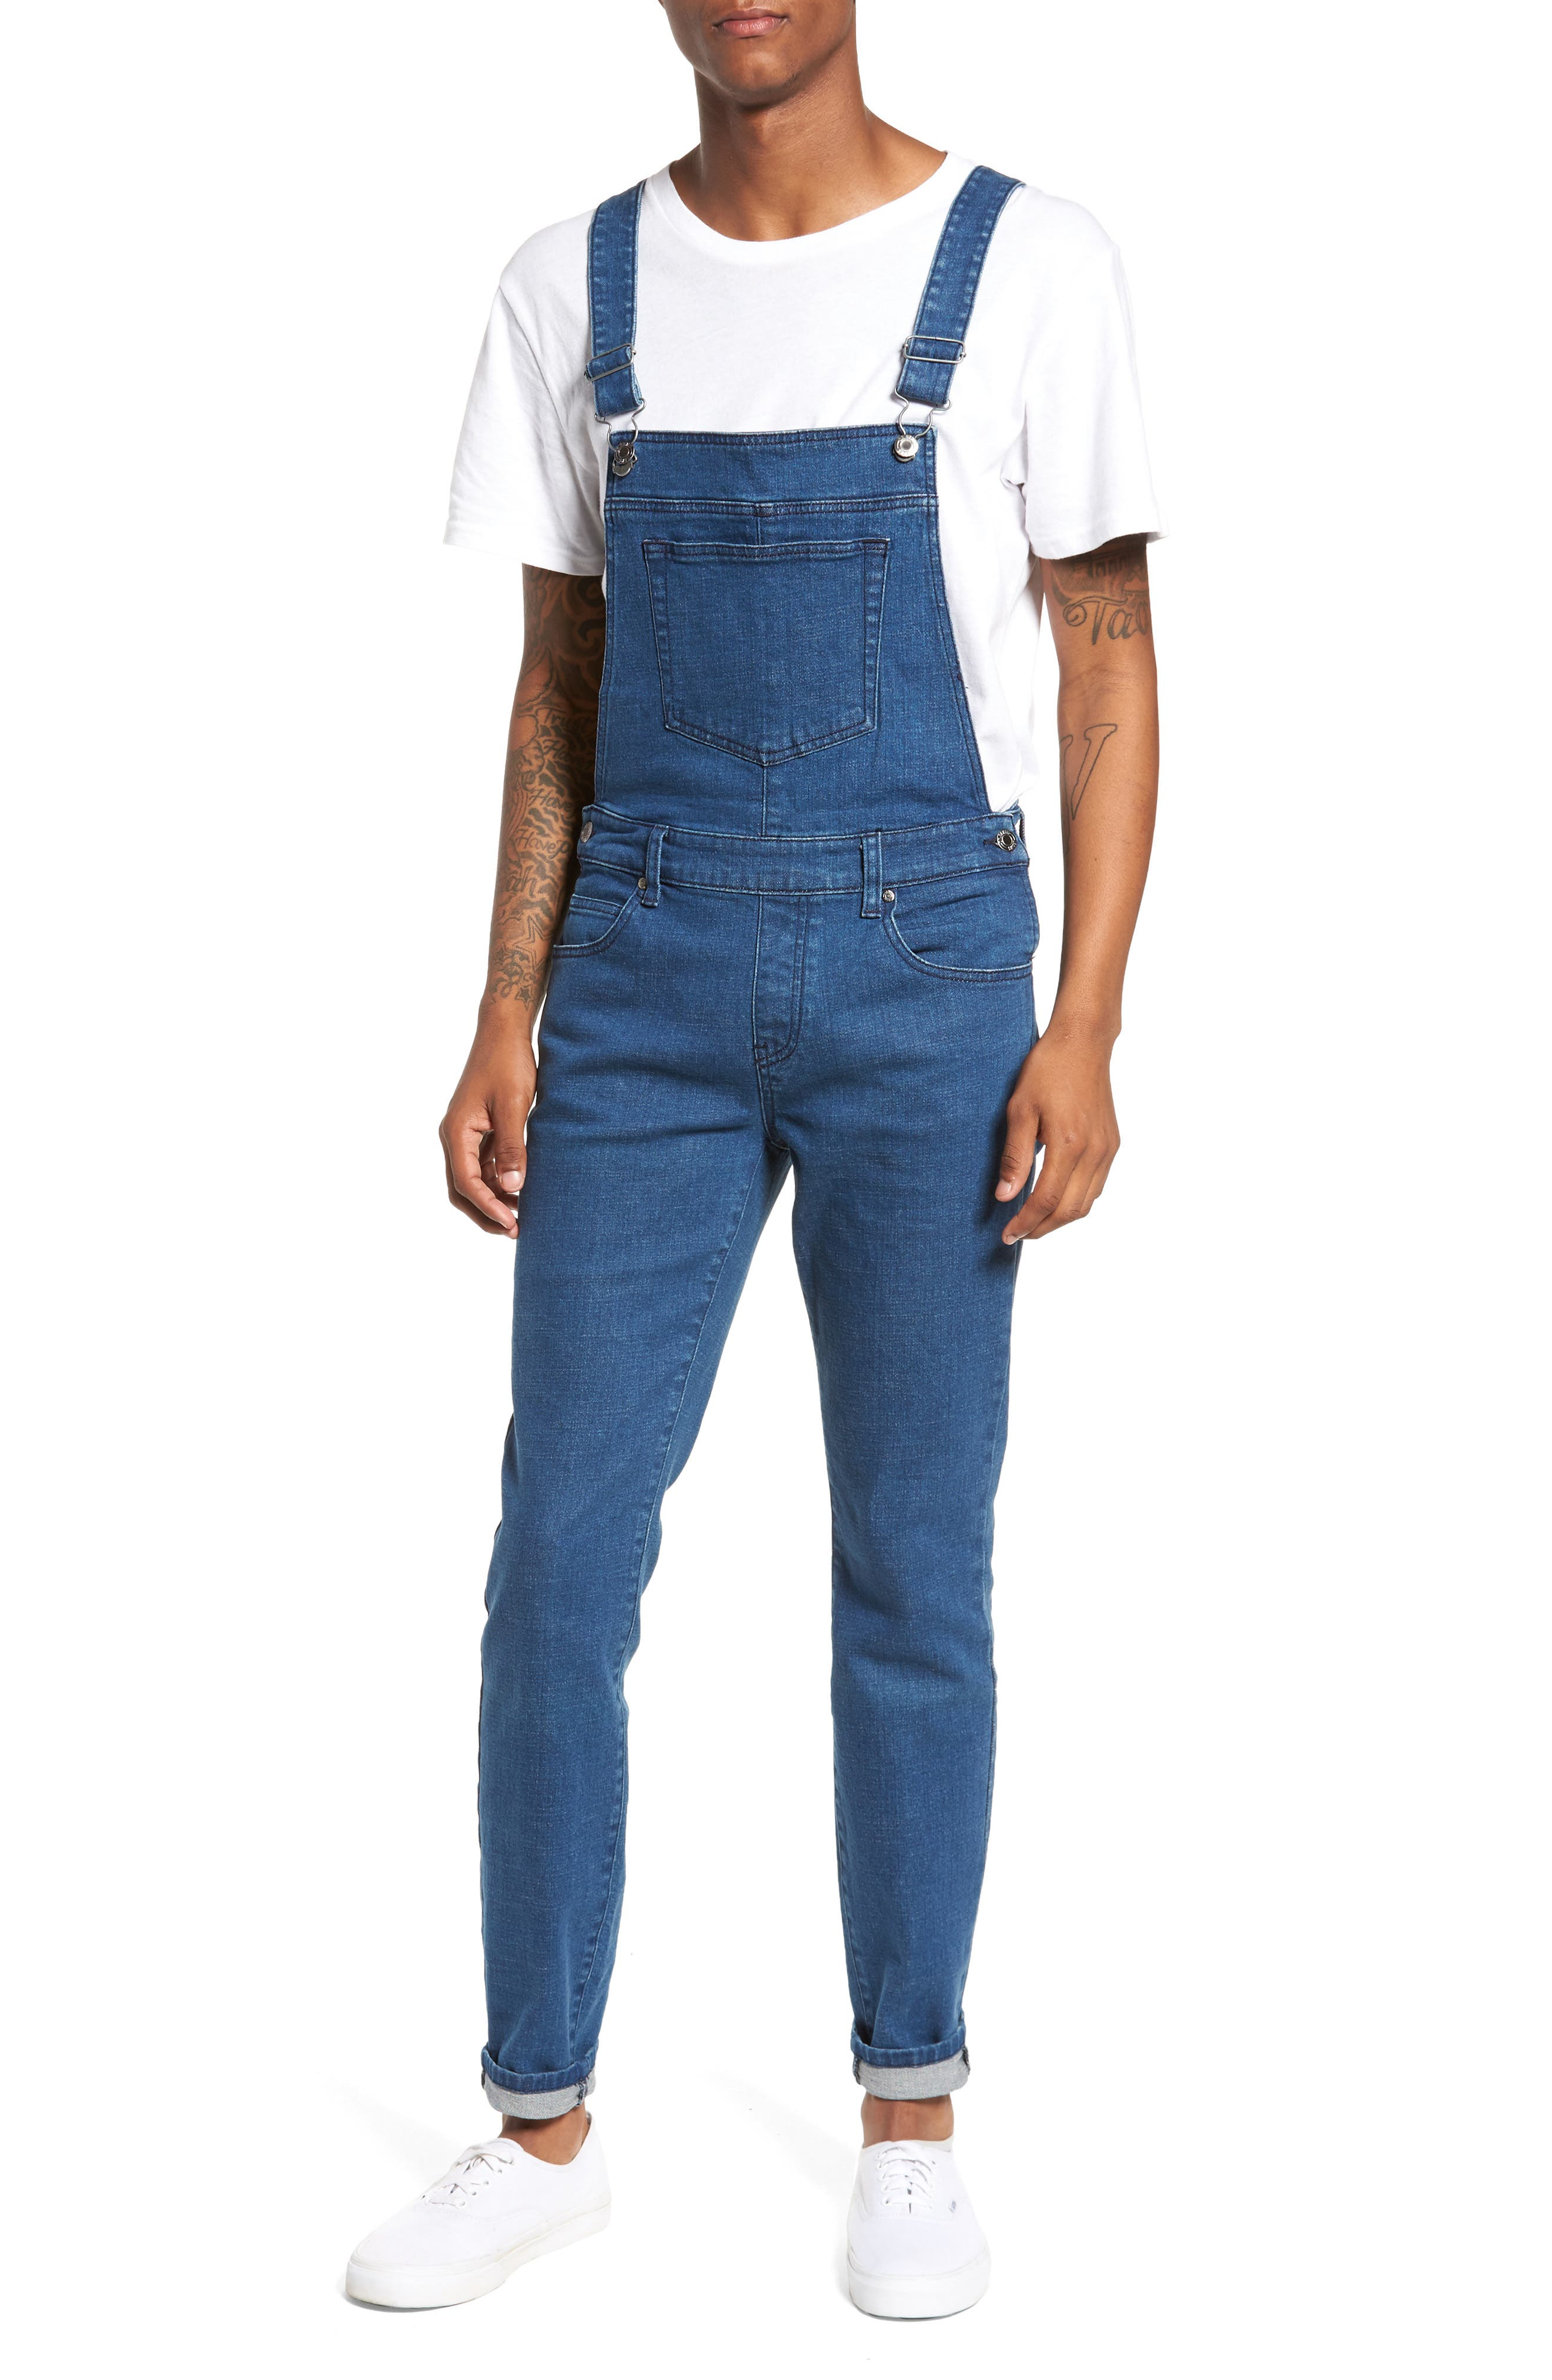 Alternate Image 1 Selected - Dr. Denim Supply Co. Ira Skinny Fit Overalls (90s Mid Stone)